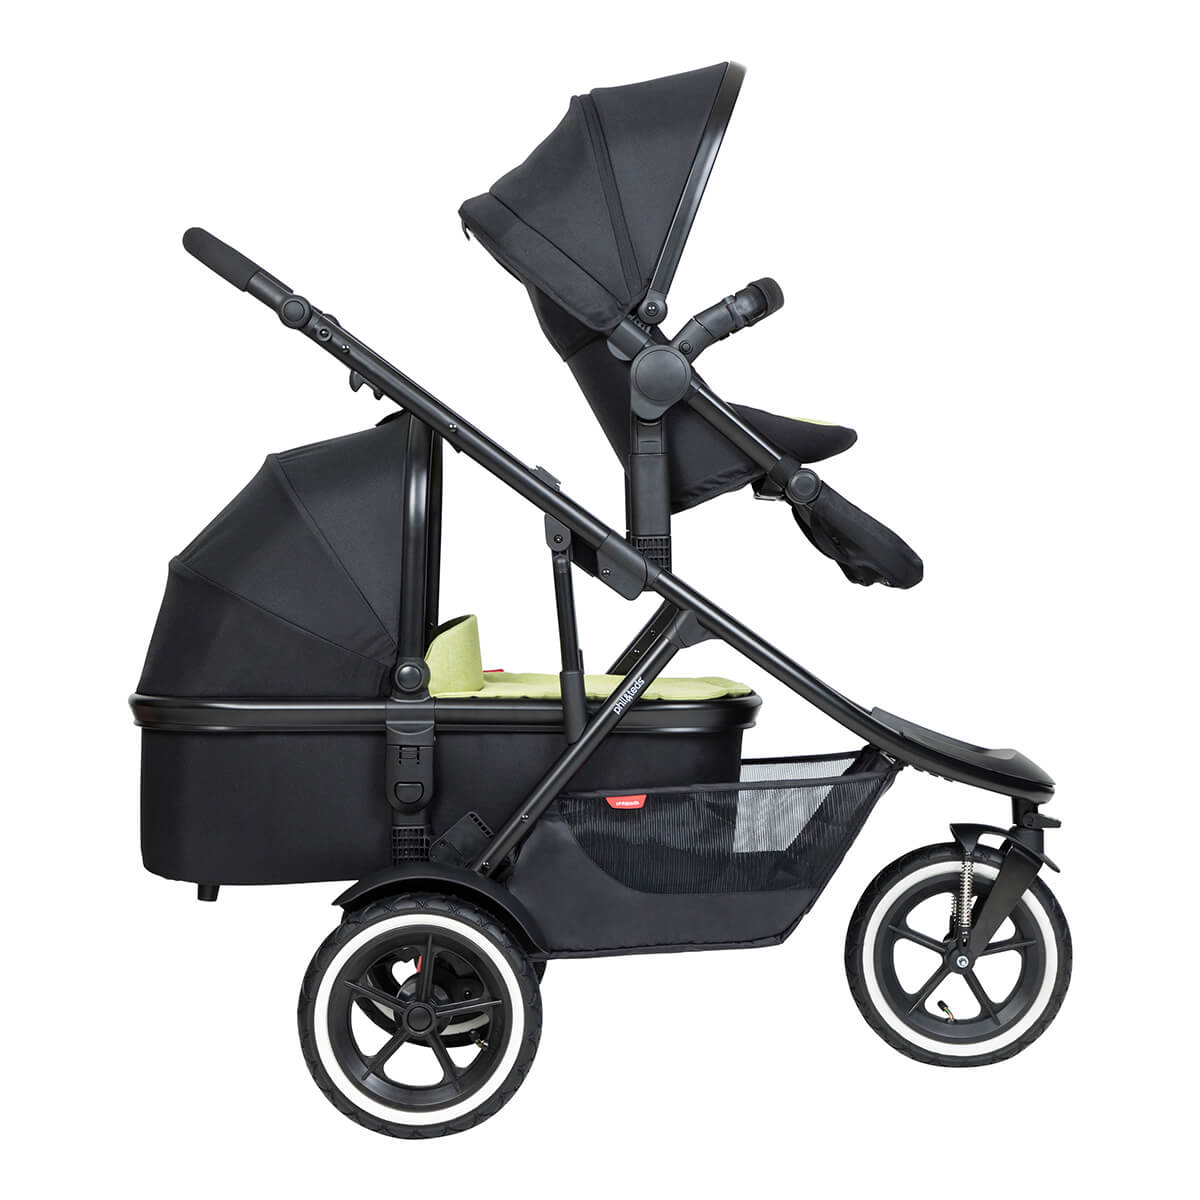 https://cdn.accentuate.io/4509901848653/19466204250306/philteds-sport-buggy-with-double-kit-extended-clip-and-snug-carrycot-side-view-v1626485414334.jpg?1200x1200